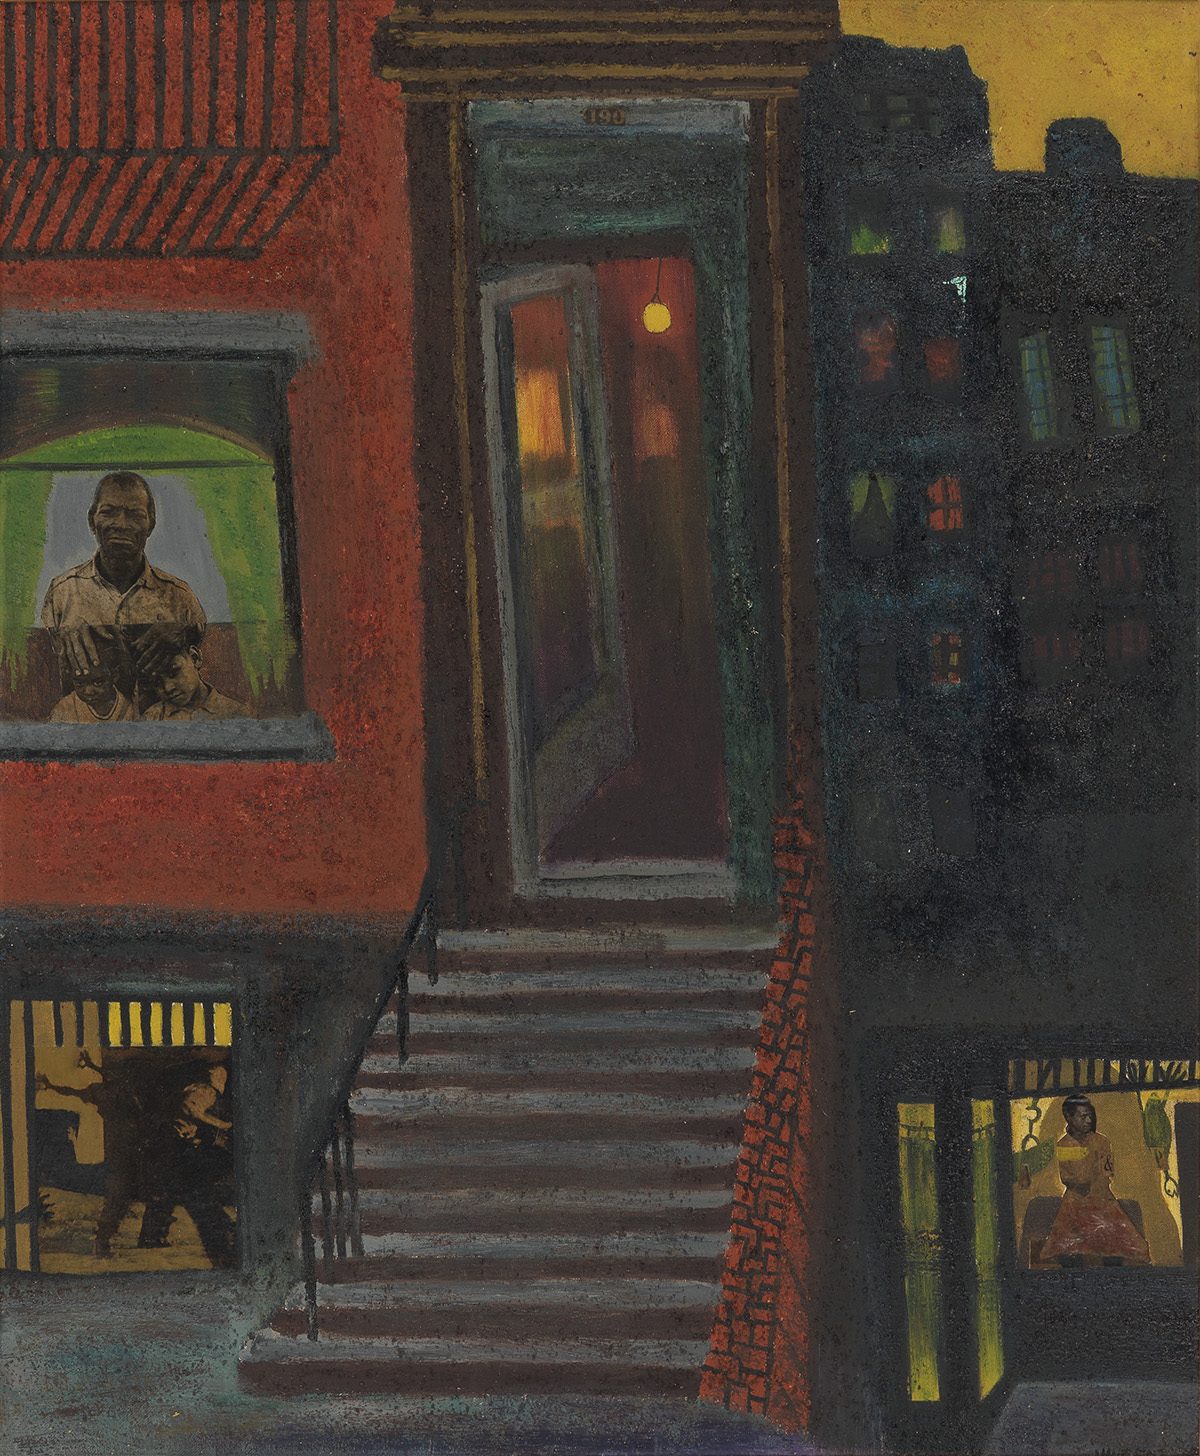 VINCENT D. SMITH (1929 - 2003) Untitled (Brownstone Stairs).